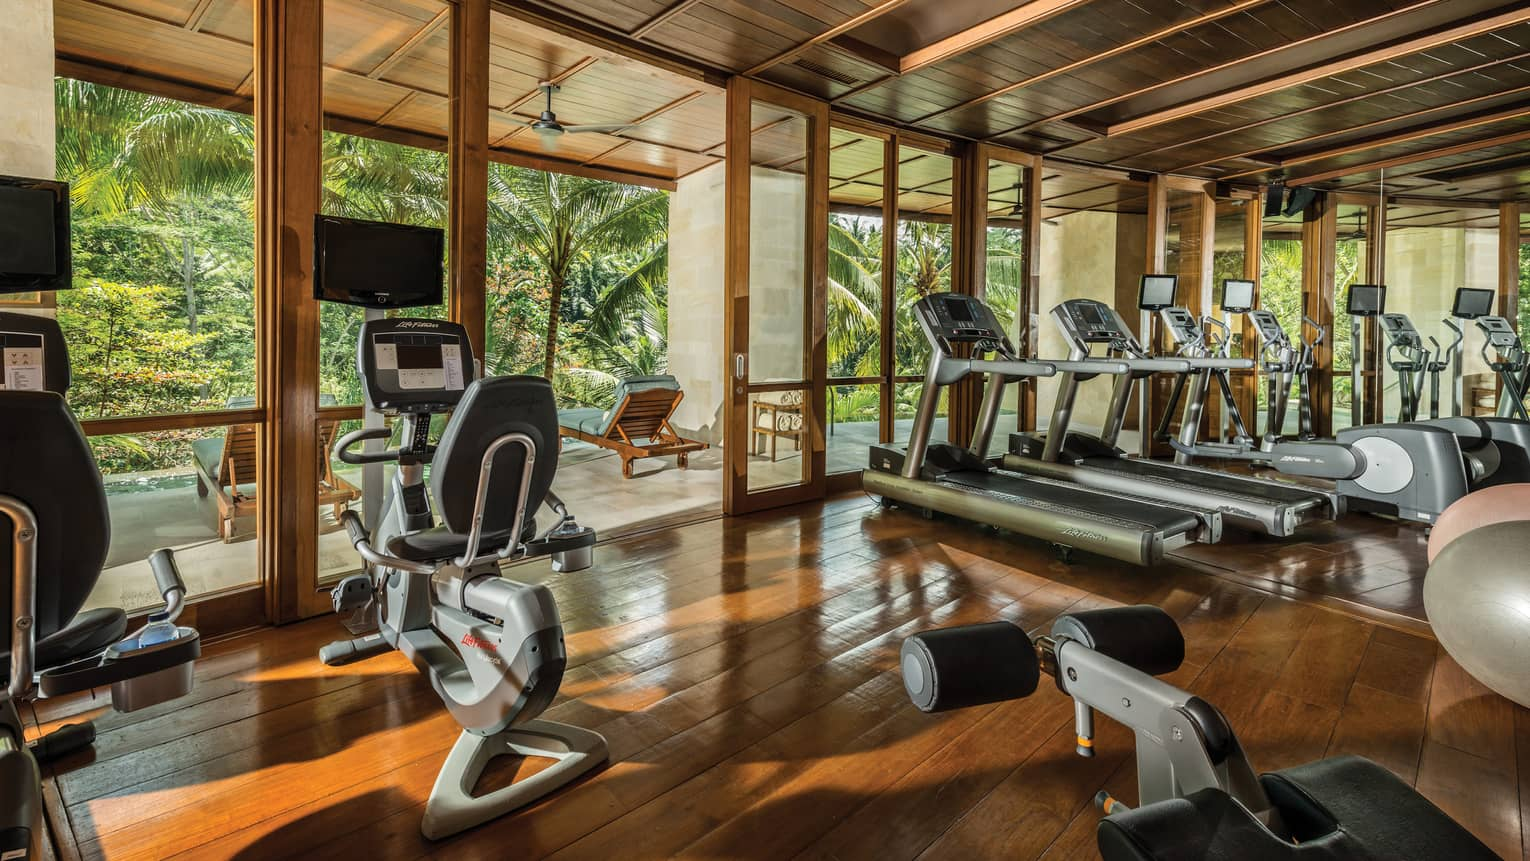 Gym equipment at a Bali resort fitness centre